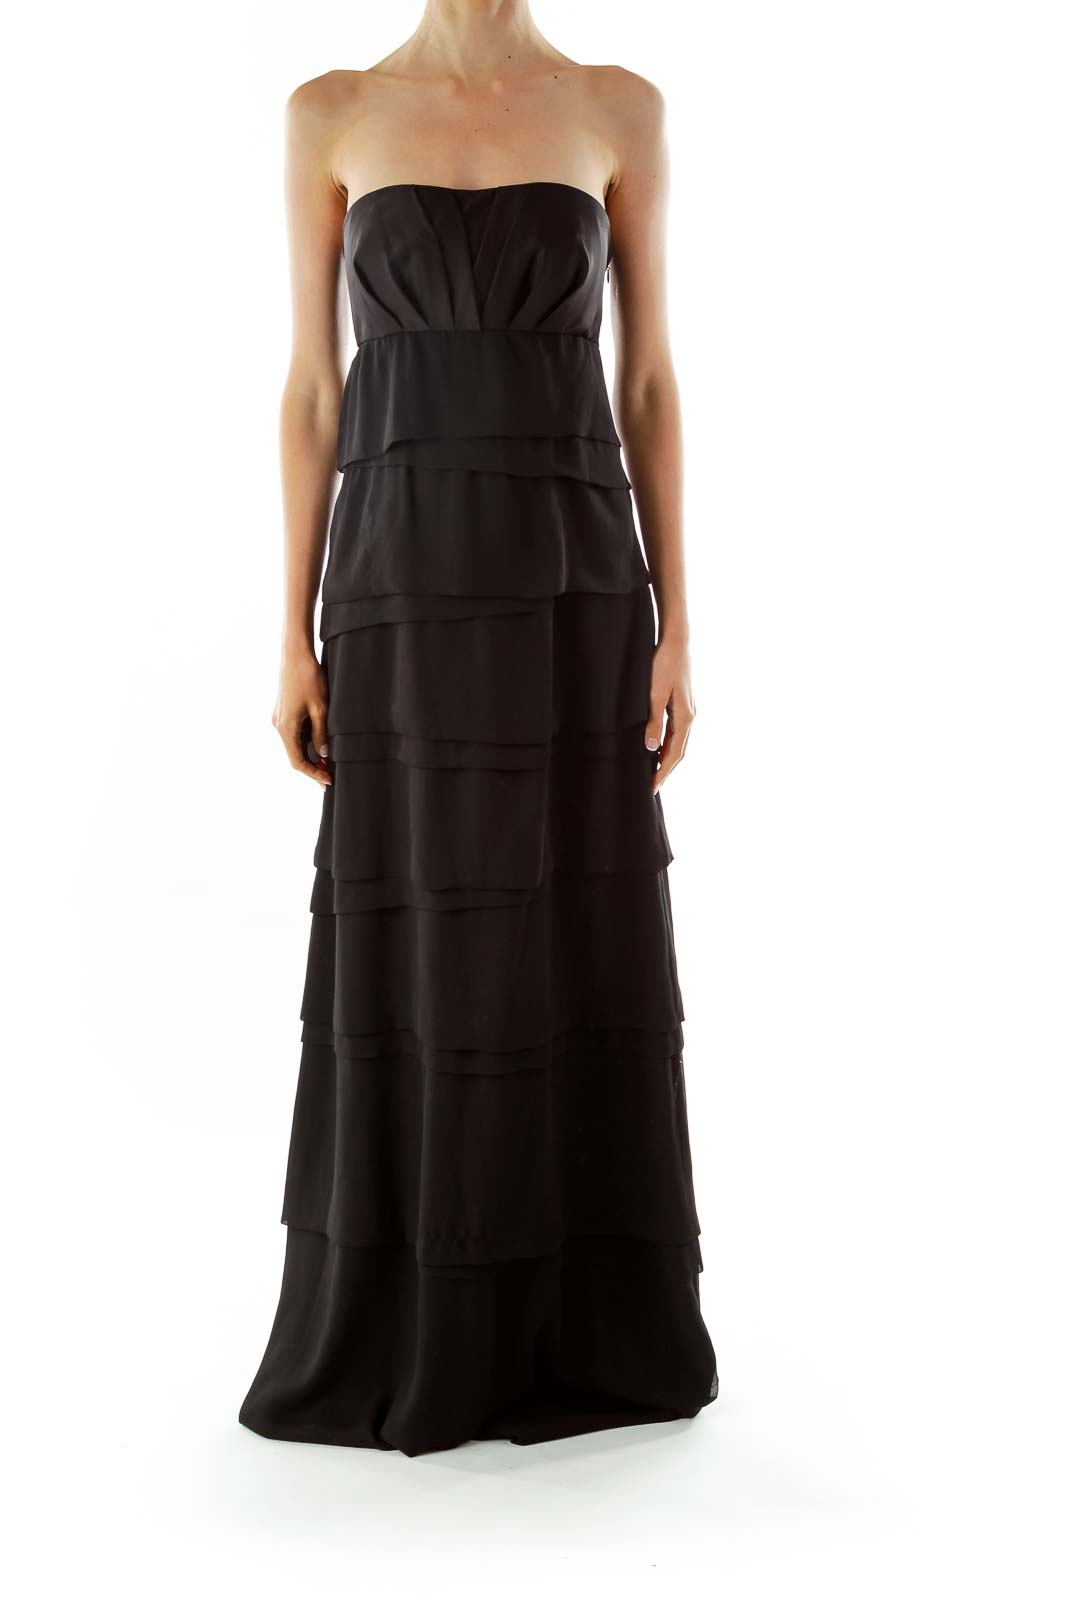 Black Ruffled Evening Dress